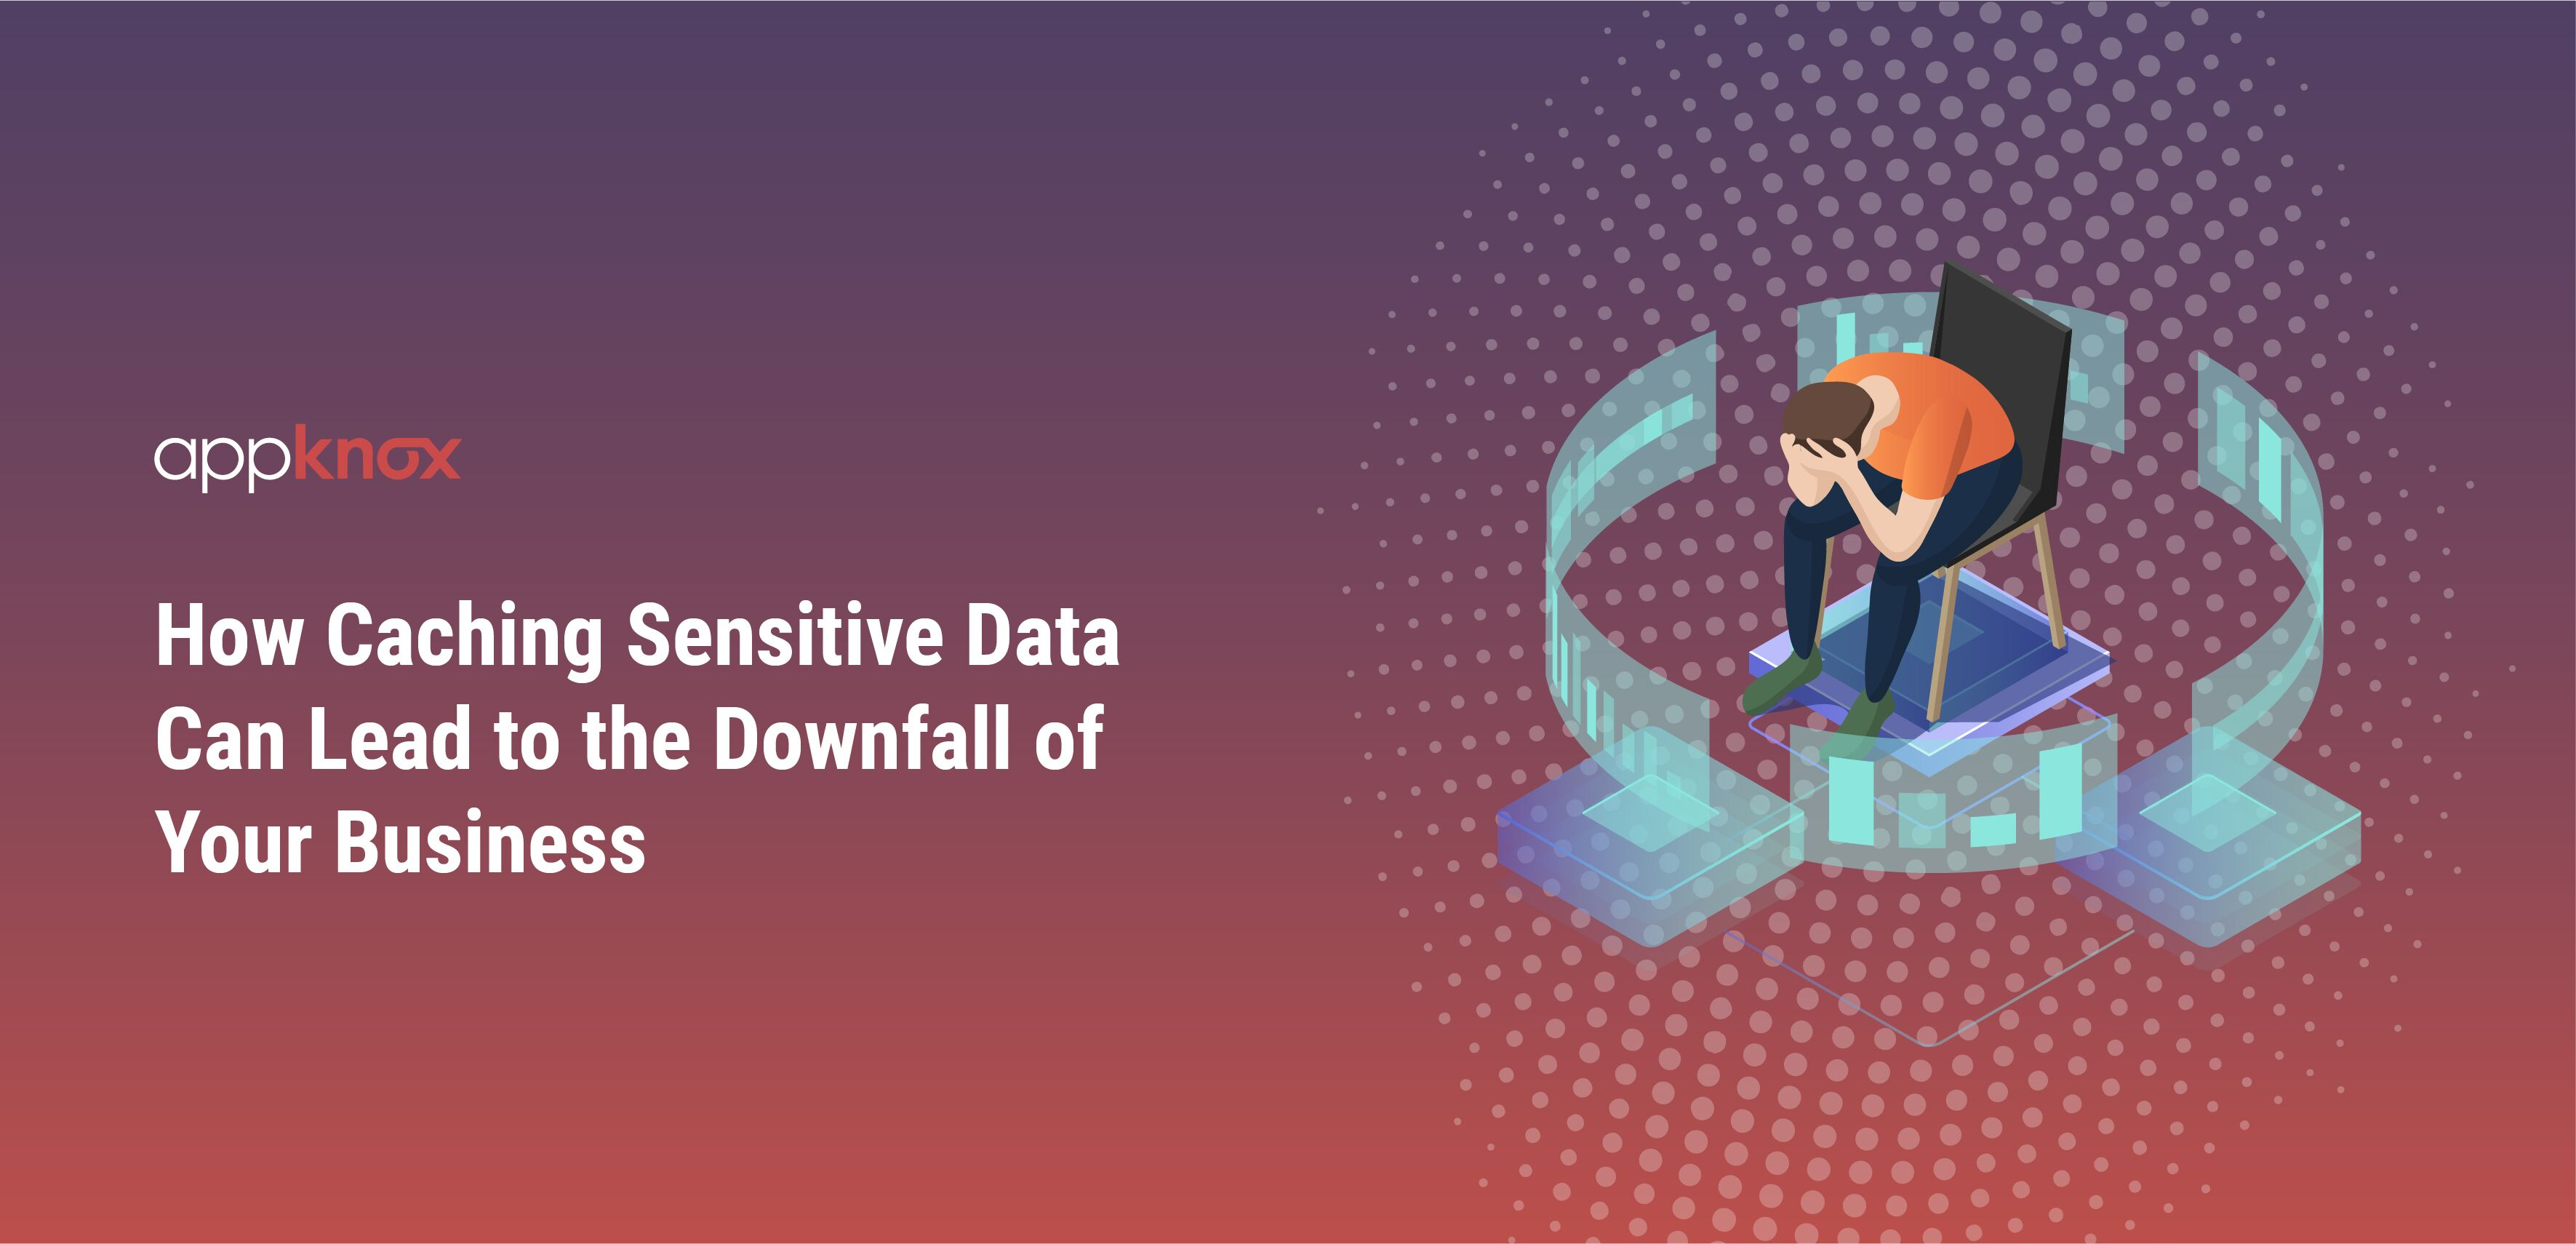 How Caching Sensitive Data Can Lead to the Downfall of Your Business